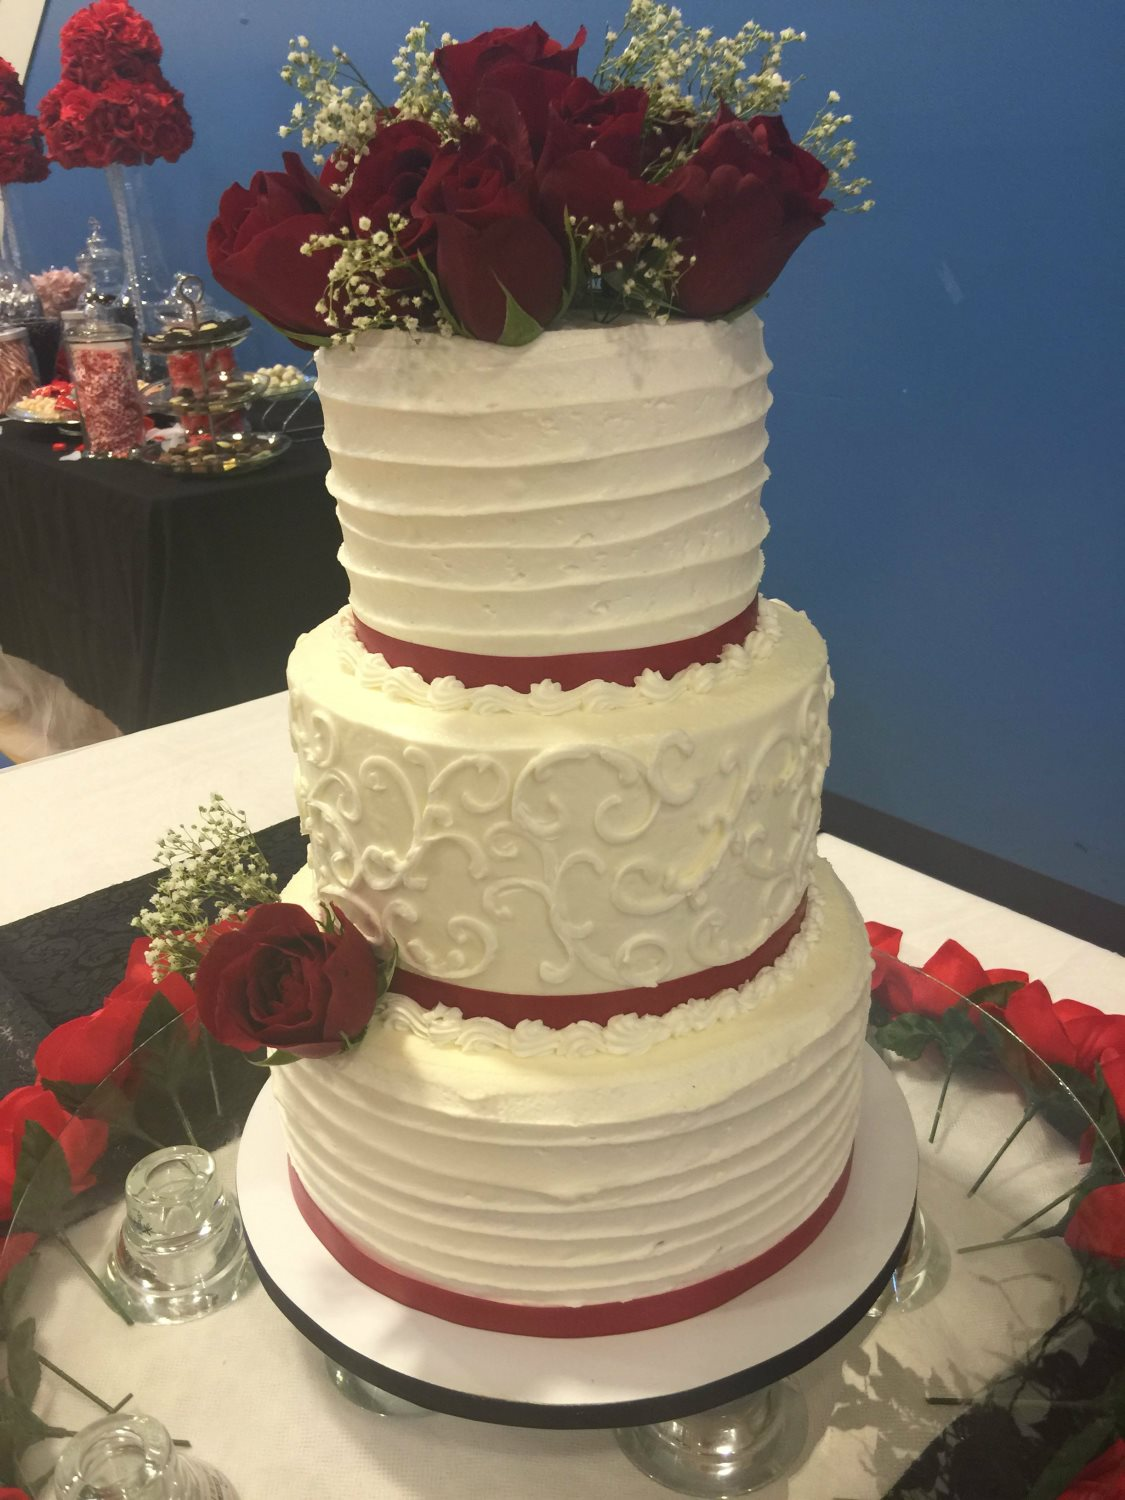 Our Events Cakes - The Cake Lady Custom Cakes